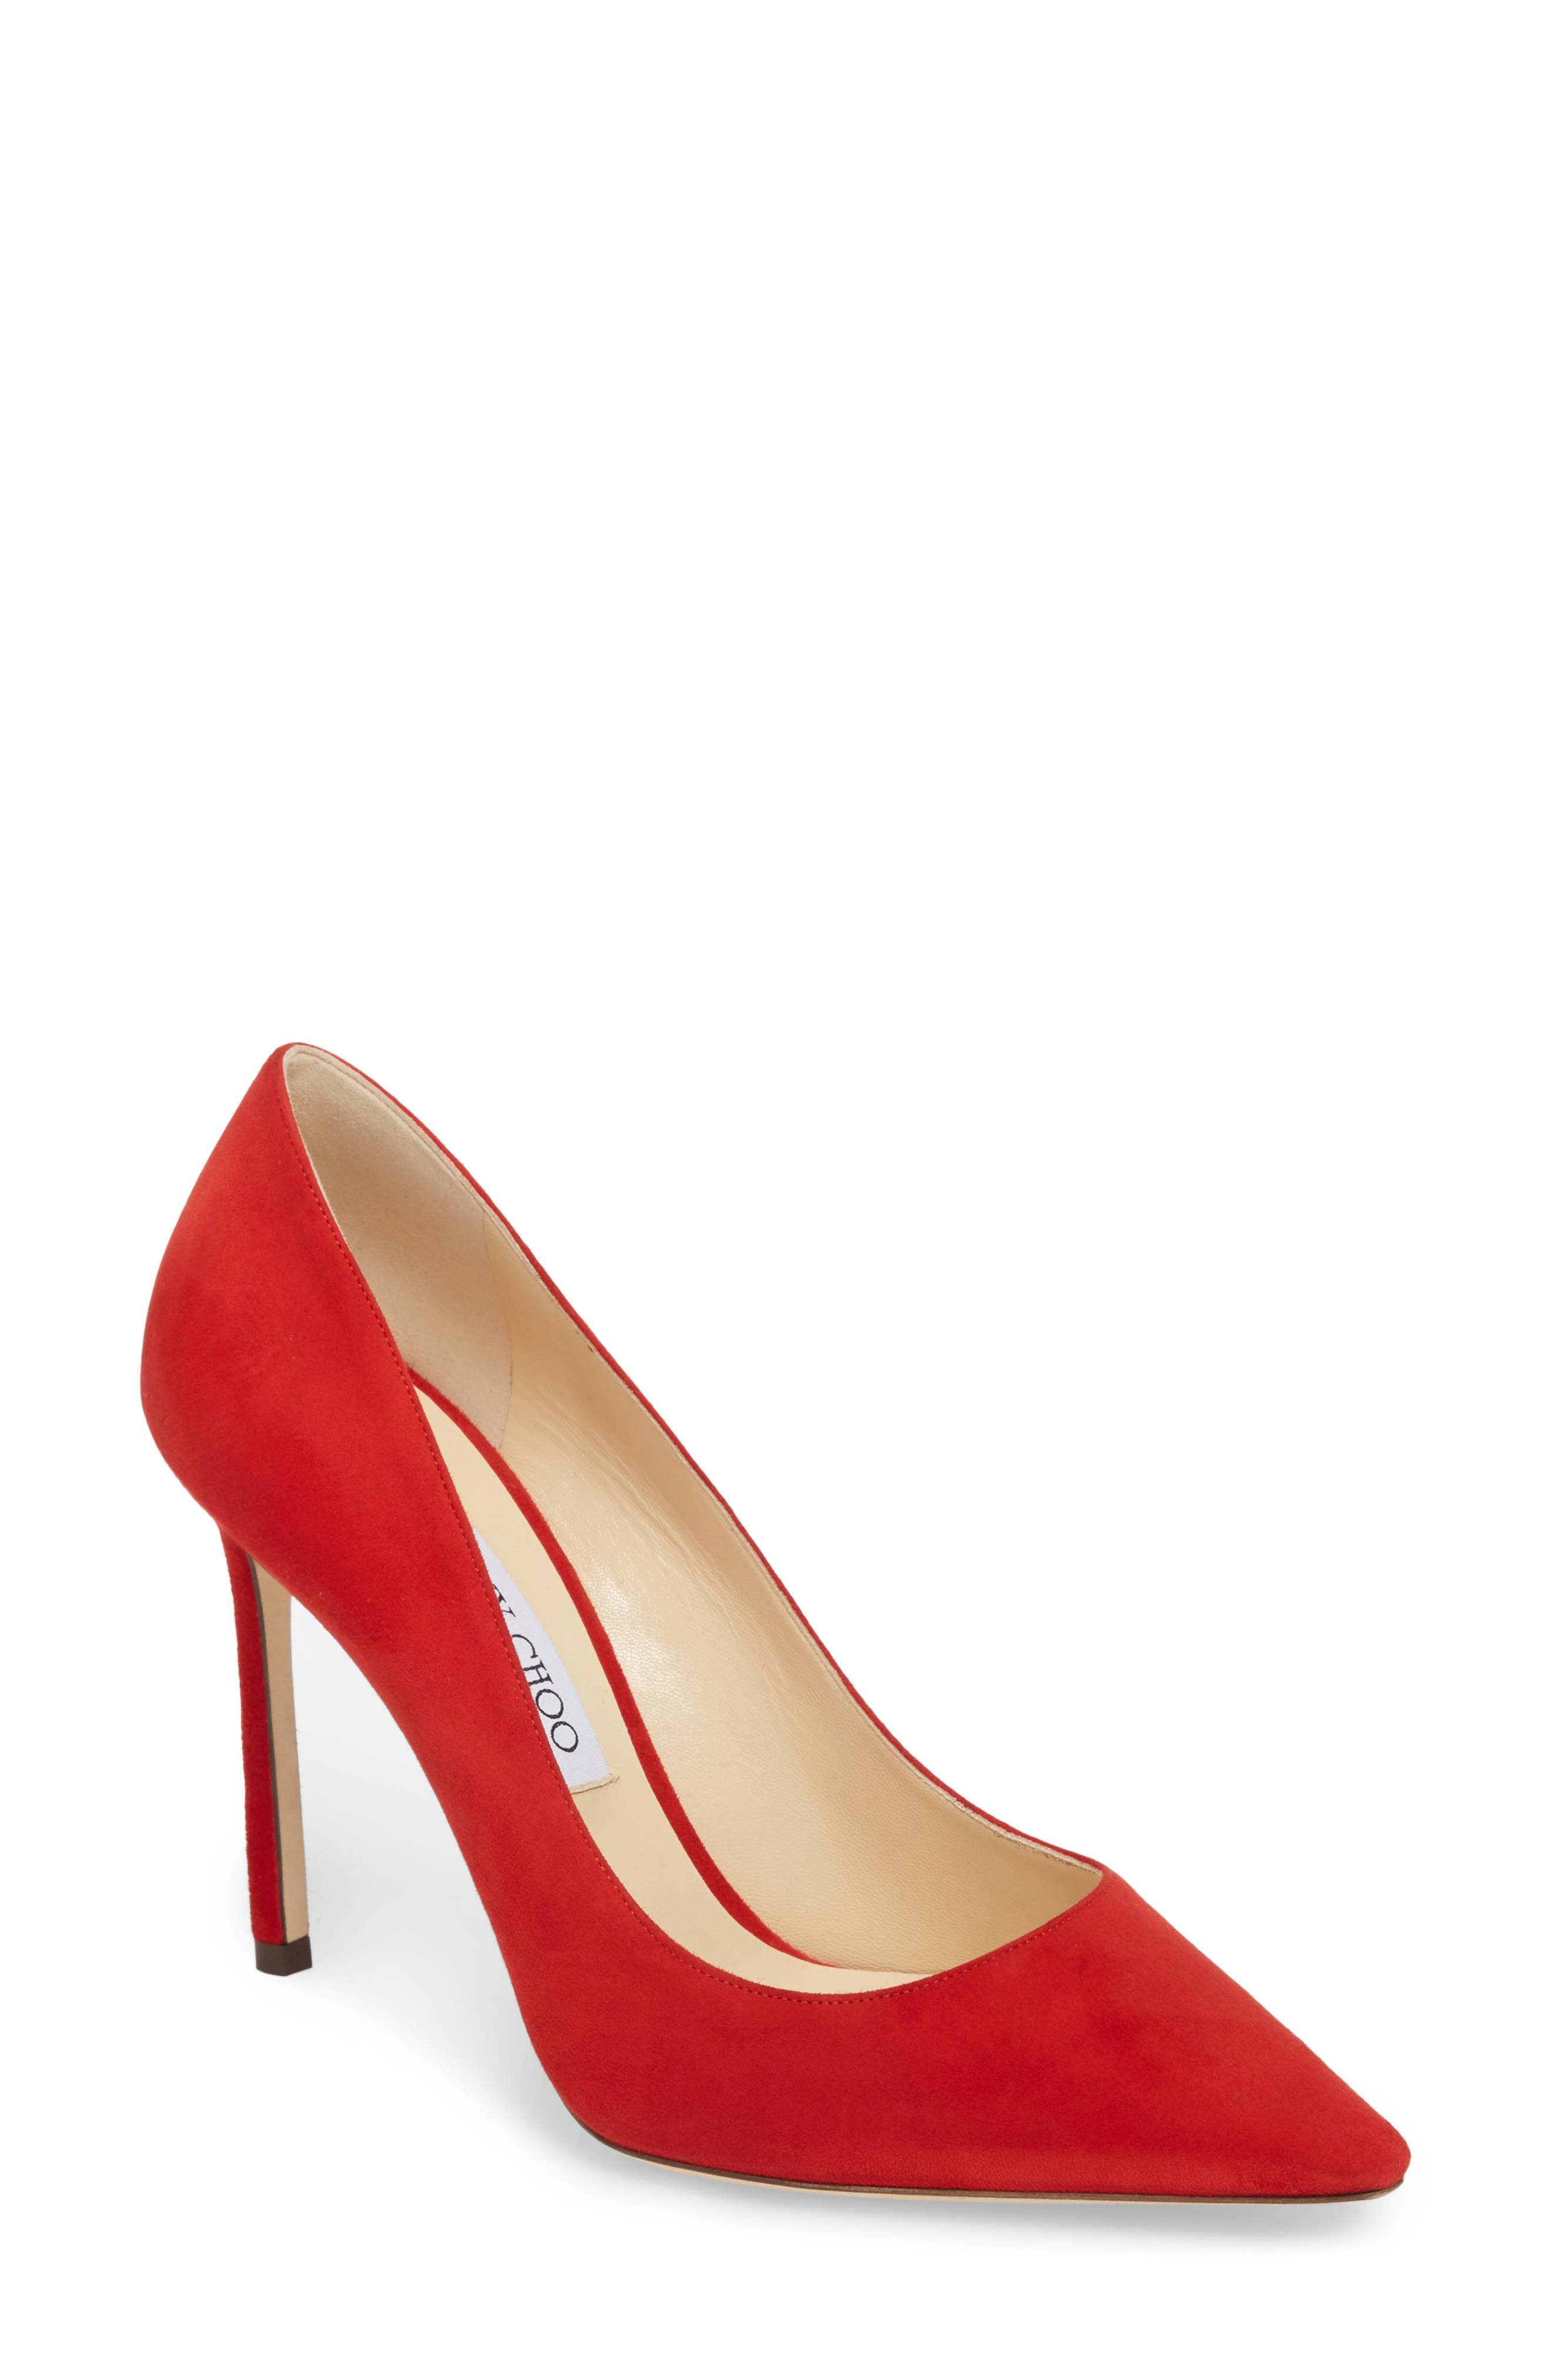 'Romy' Pointy Toe Pump,                             Main thumbnail 1, color,                             Red Suede